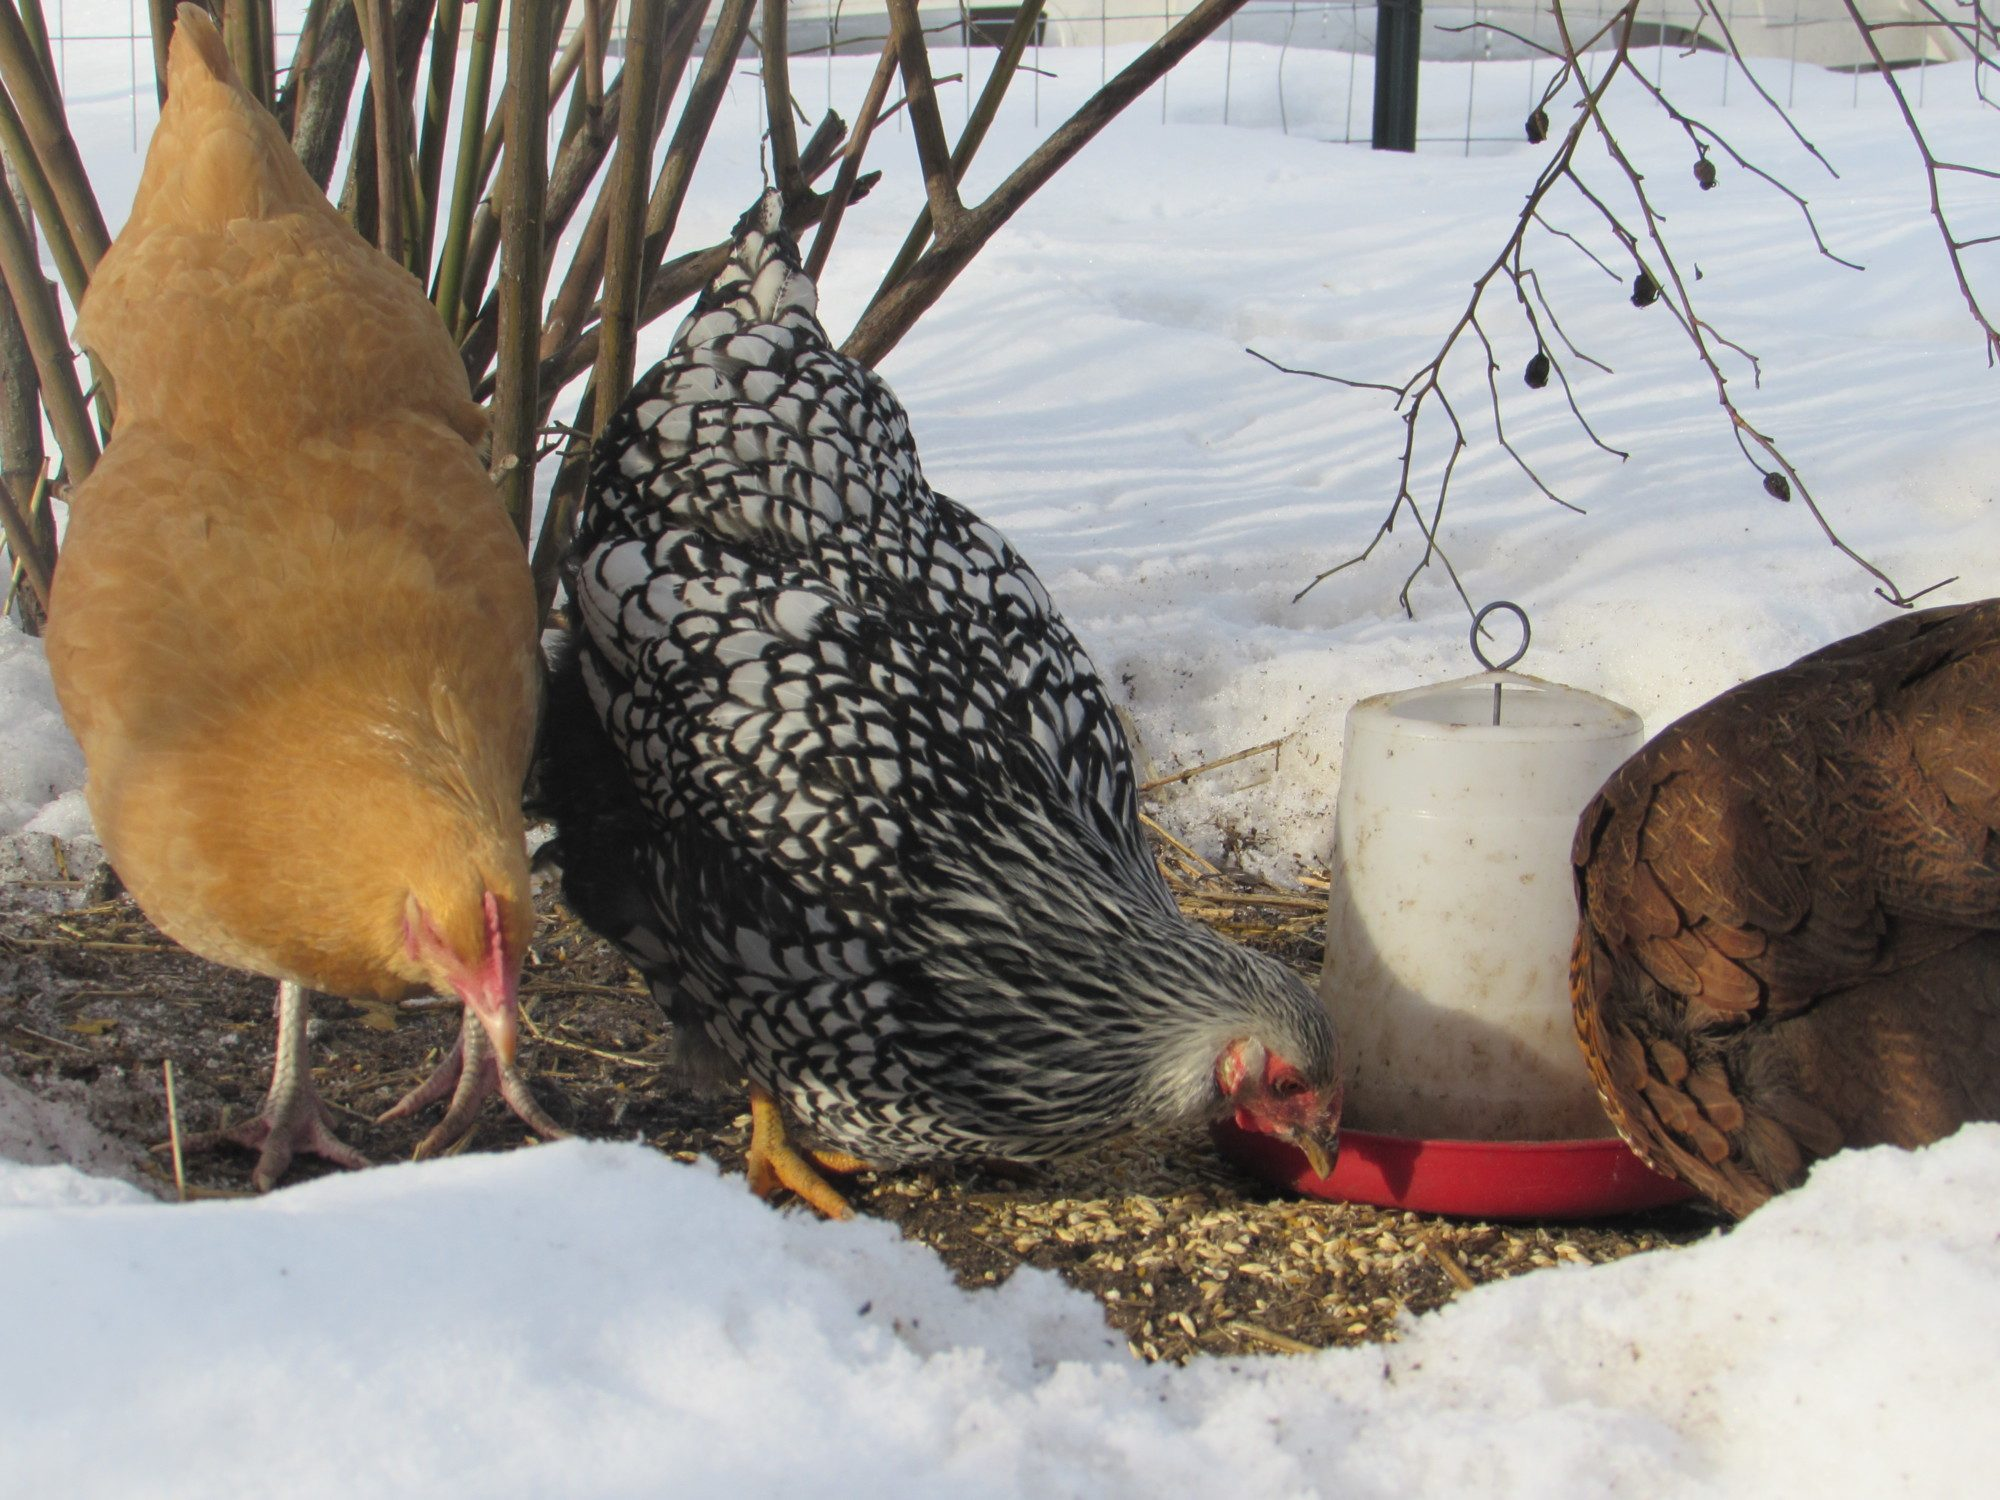 Lizardlicks's photos in 2017 Groundhog Day Hatch-a-long Chickens in the Snow contest!